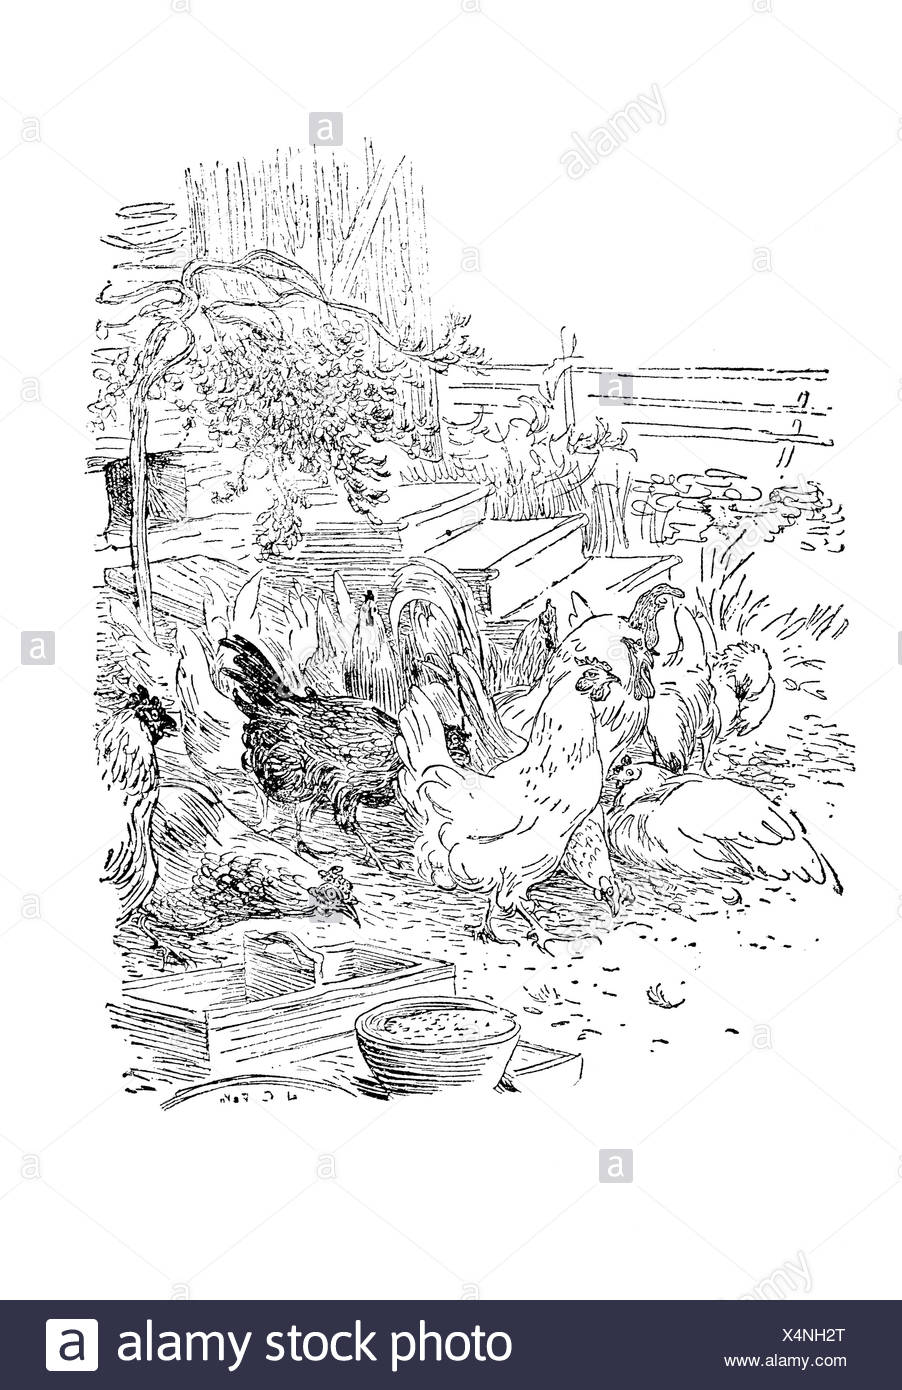 Chickens, illustration in The House in the Sun by Carl Larsson, 1917 - Stock Image